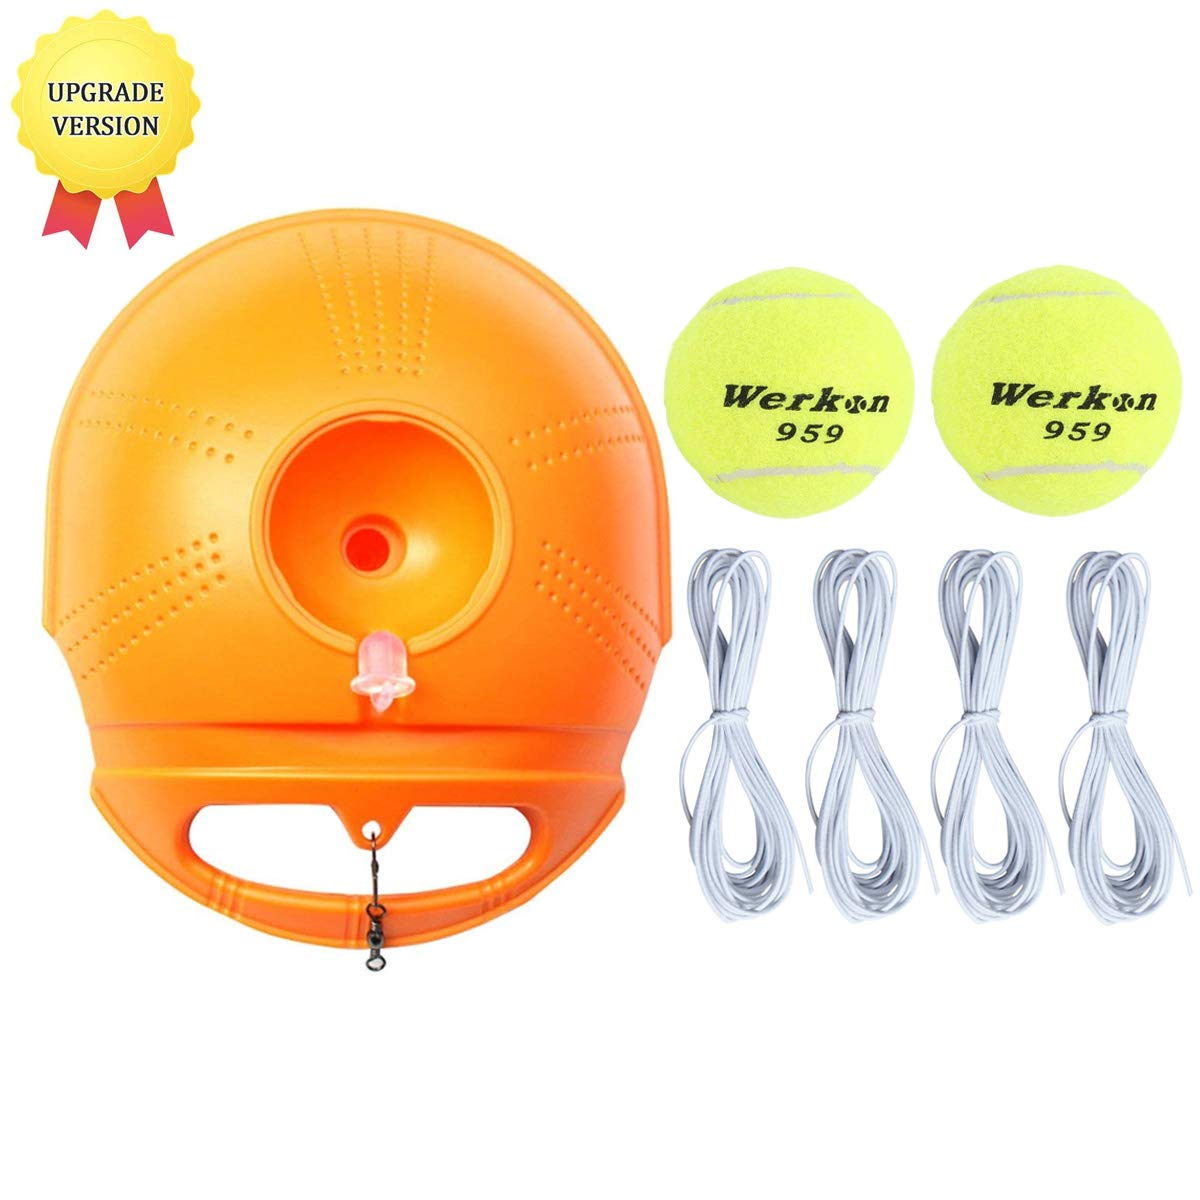 YVO Solo Tennis Trainer Set Rebound Ball Power Base Baseboard Tennis Ball Back Trainer Self-Study Training Aid Tool Practice Equipment with Replacement Ball & Elastic String for Beginner